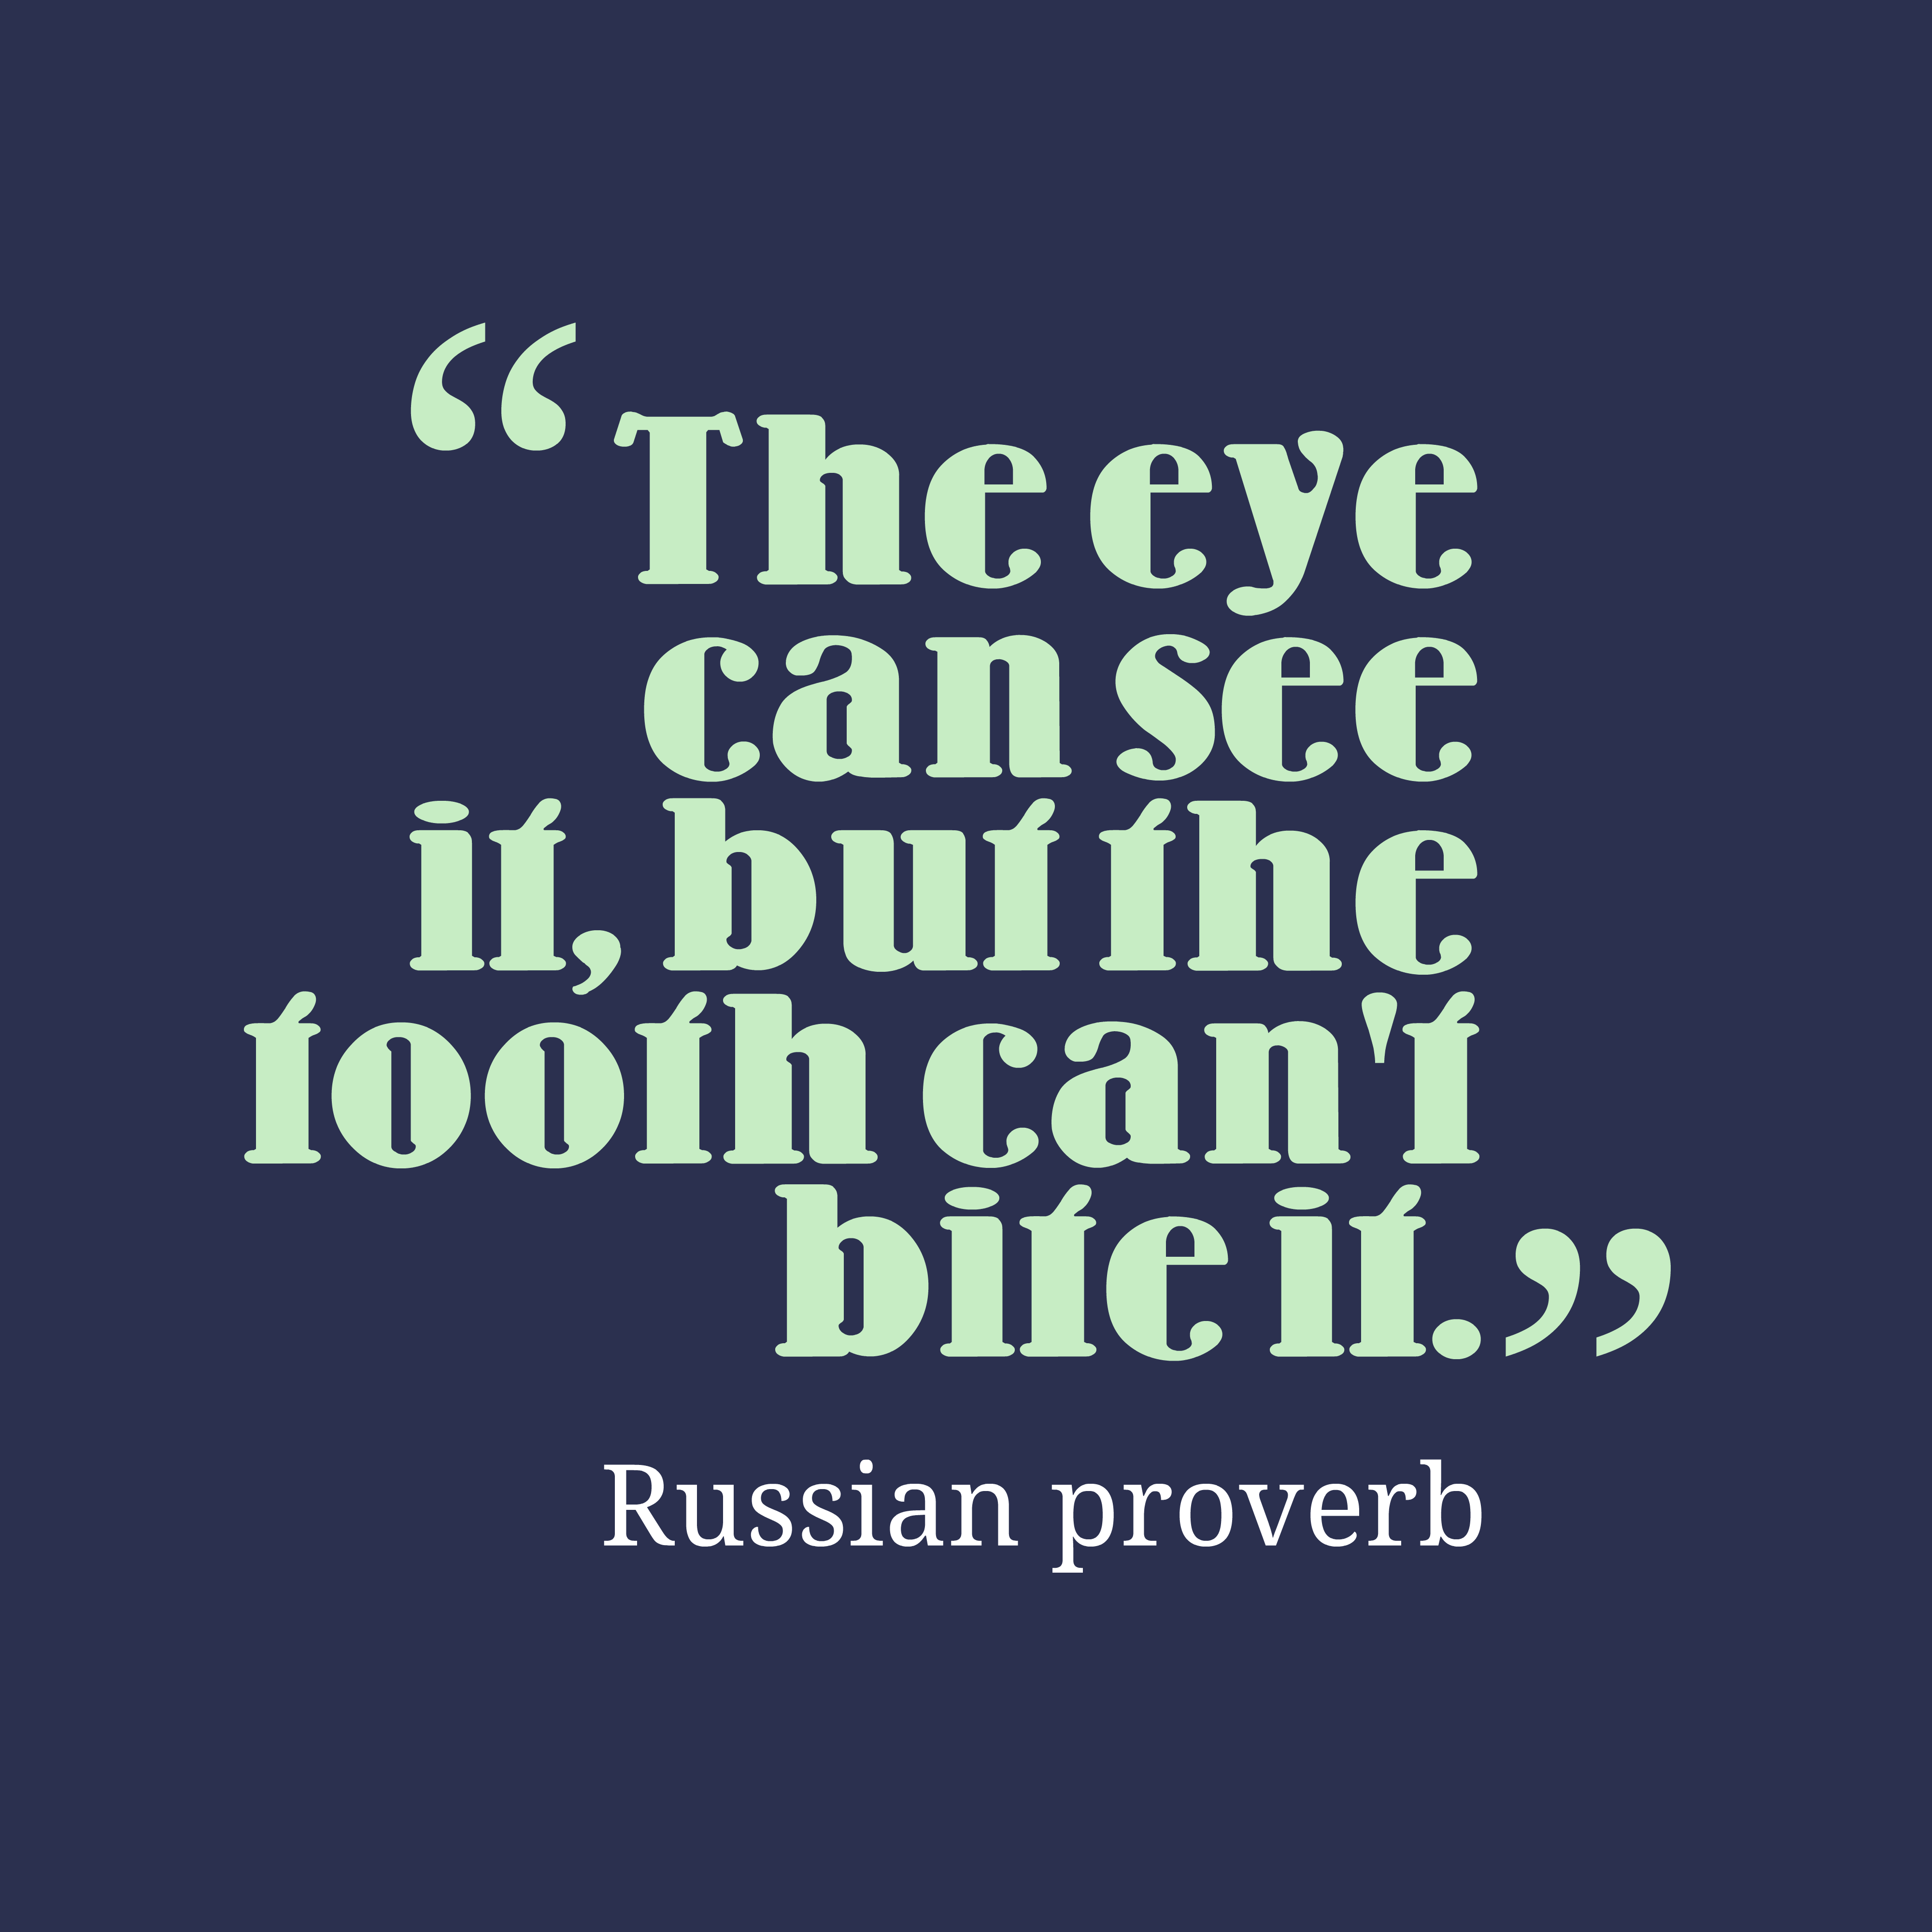 Quotes image of The eye can see it, but the tooth can't bite it.